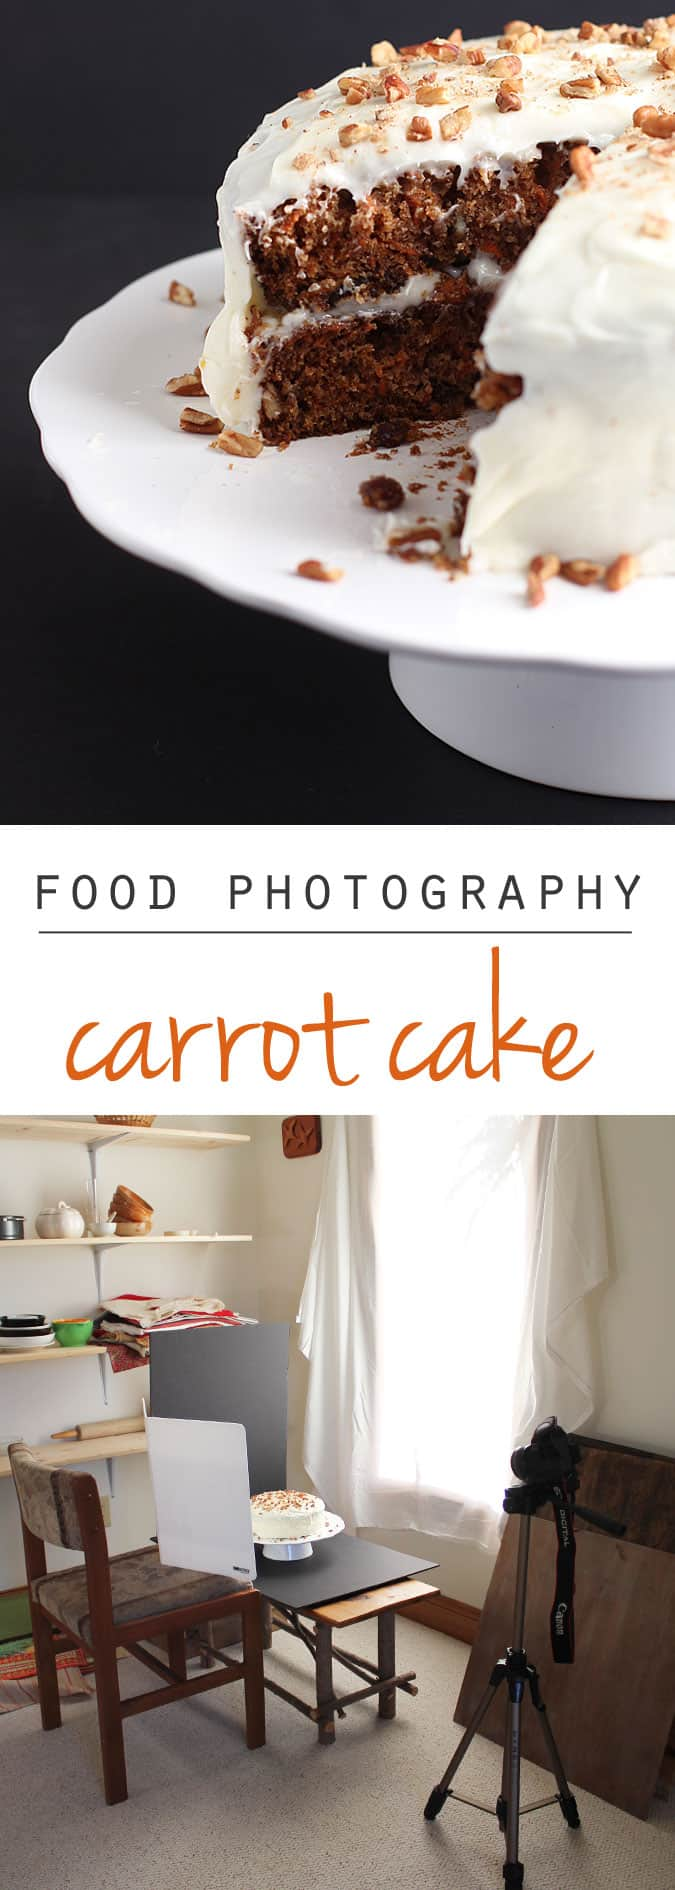 Food Photography:  Photographing Carrot Cake